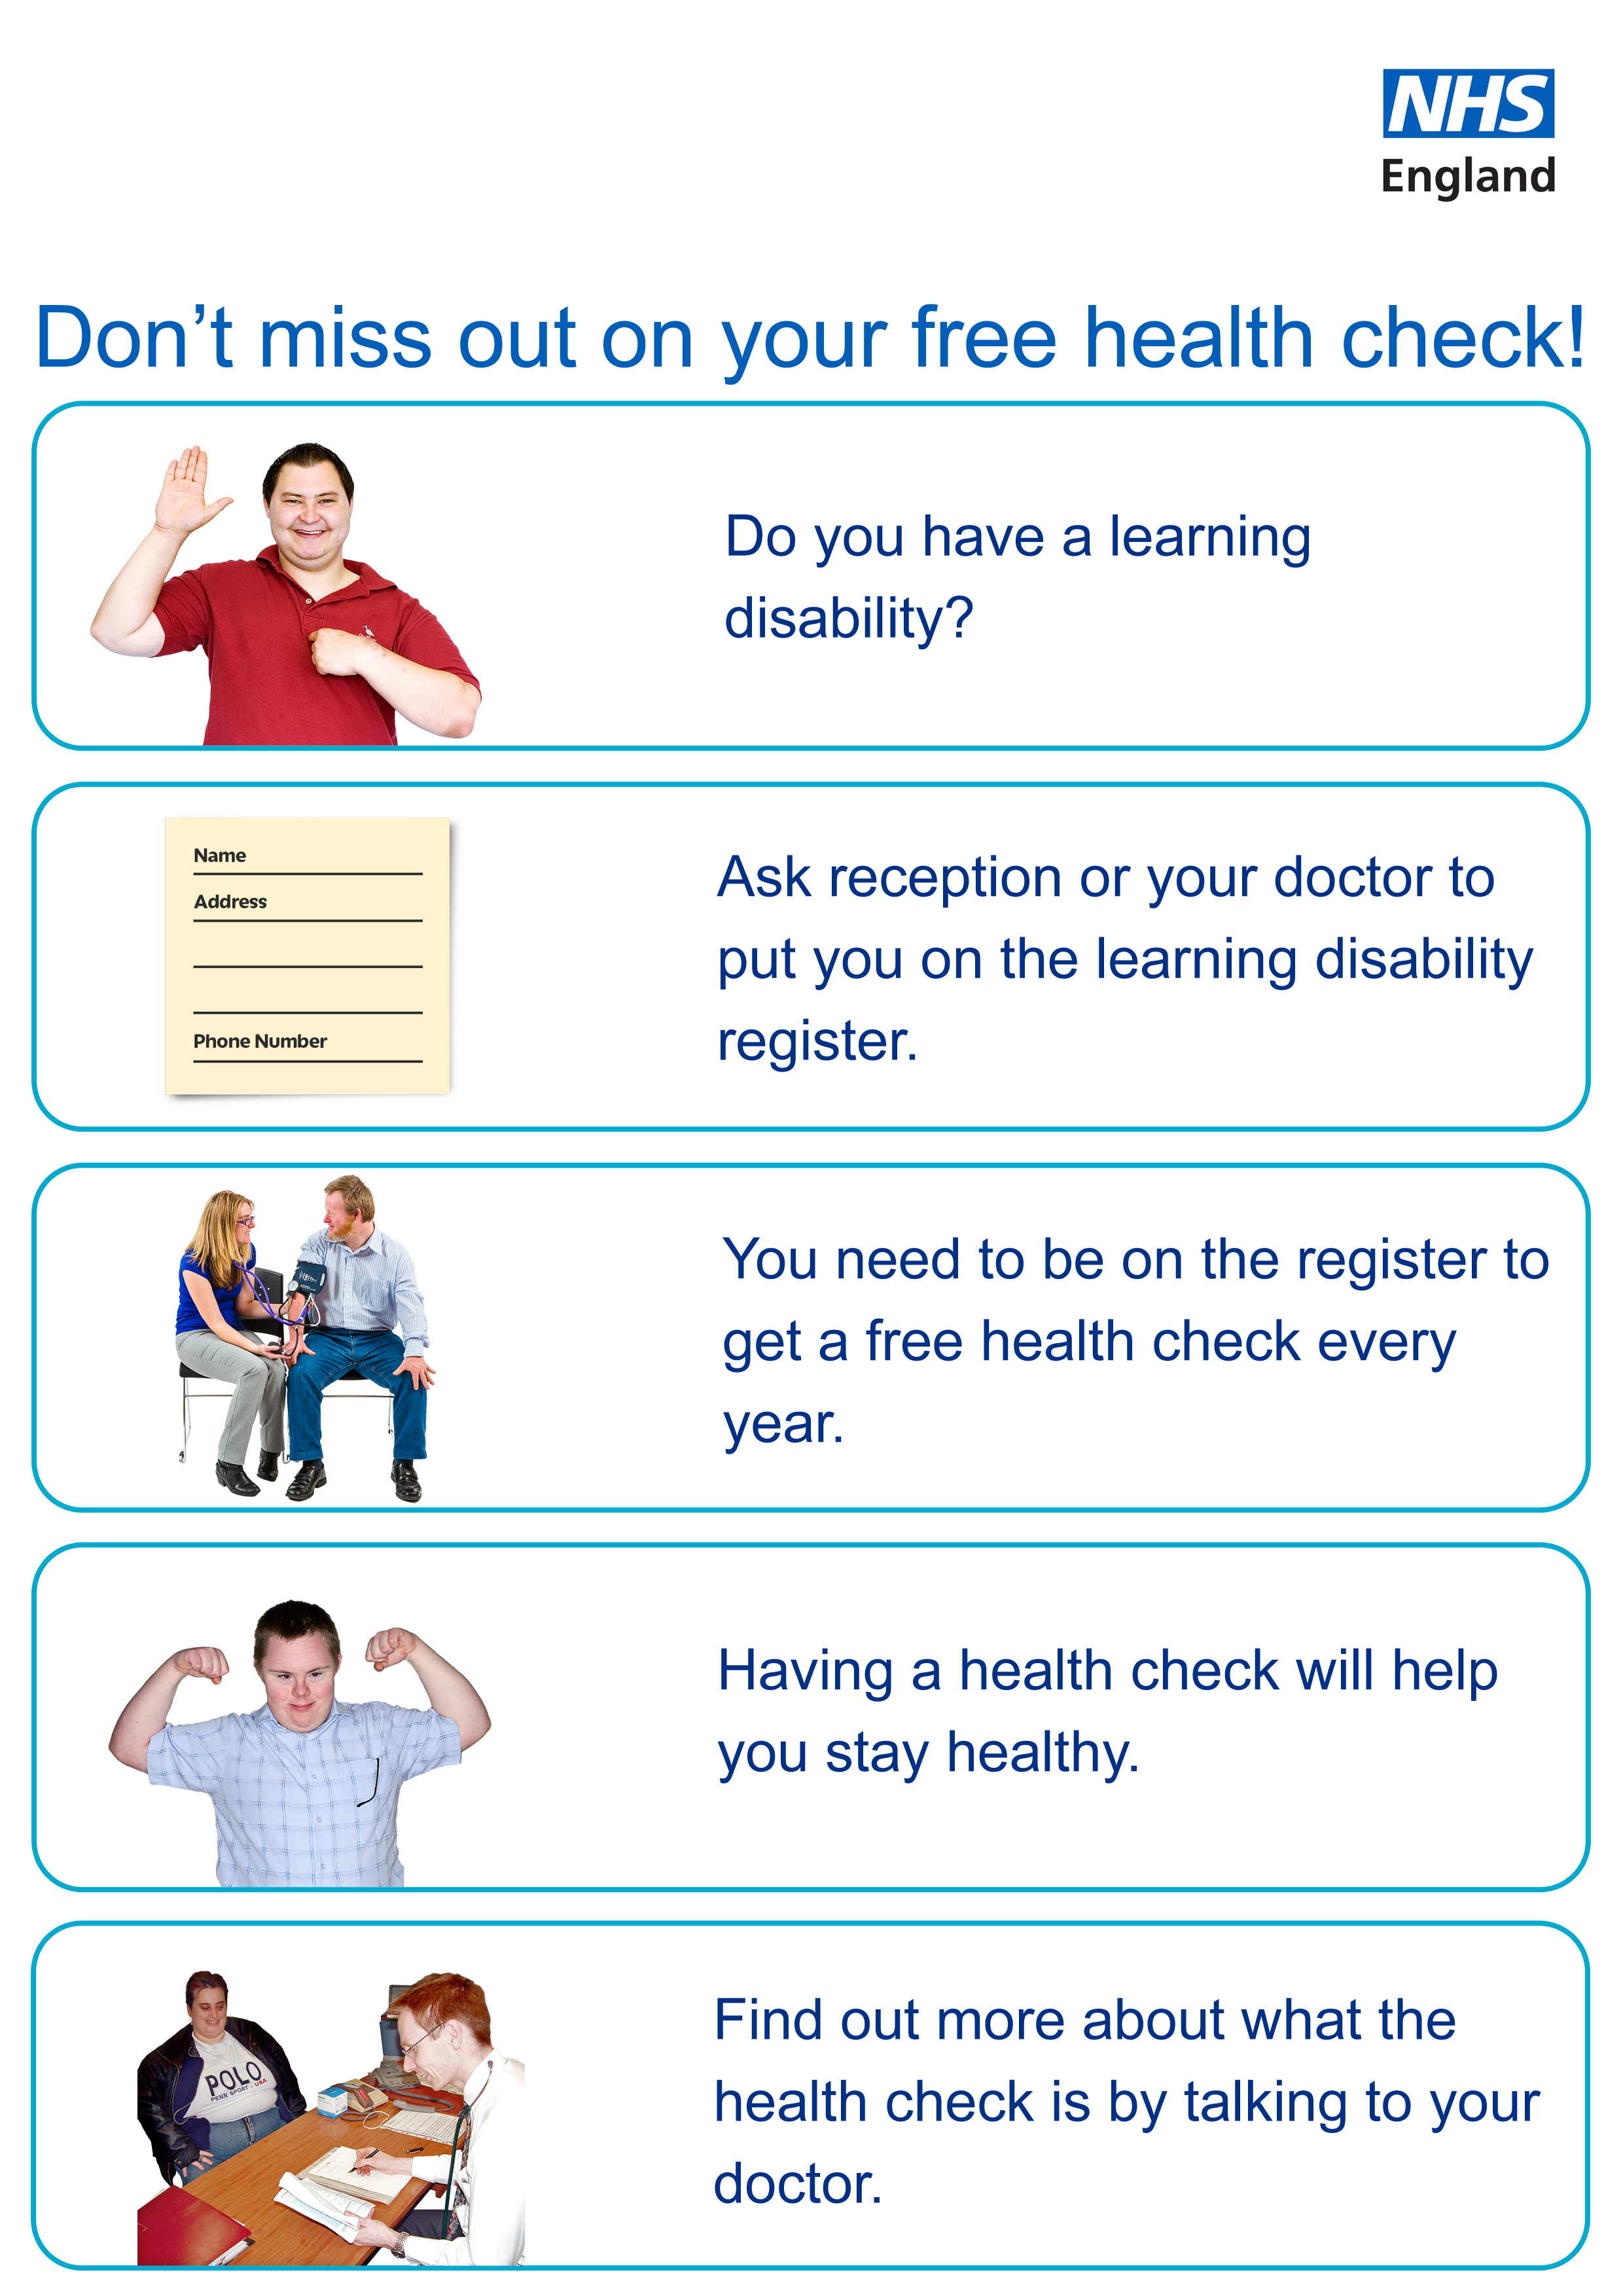 Nhs england south west resource hub for Registrator health check